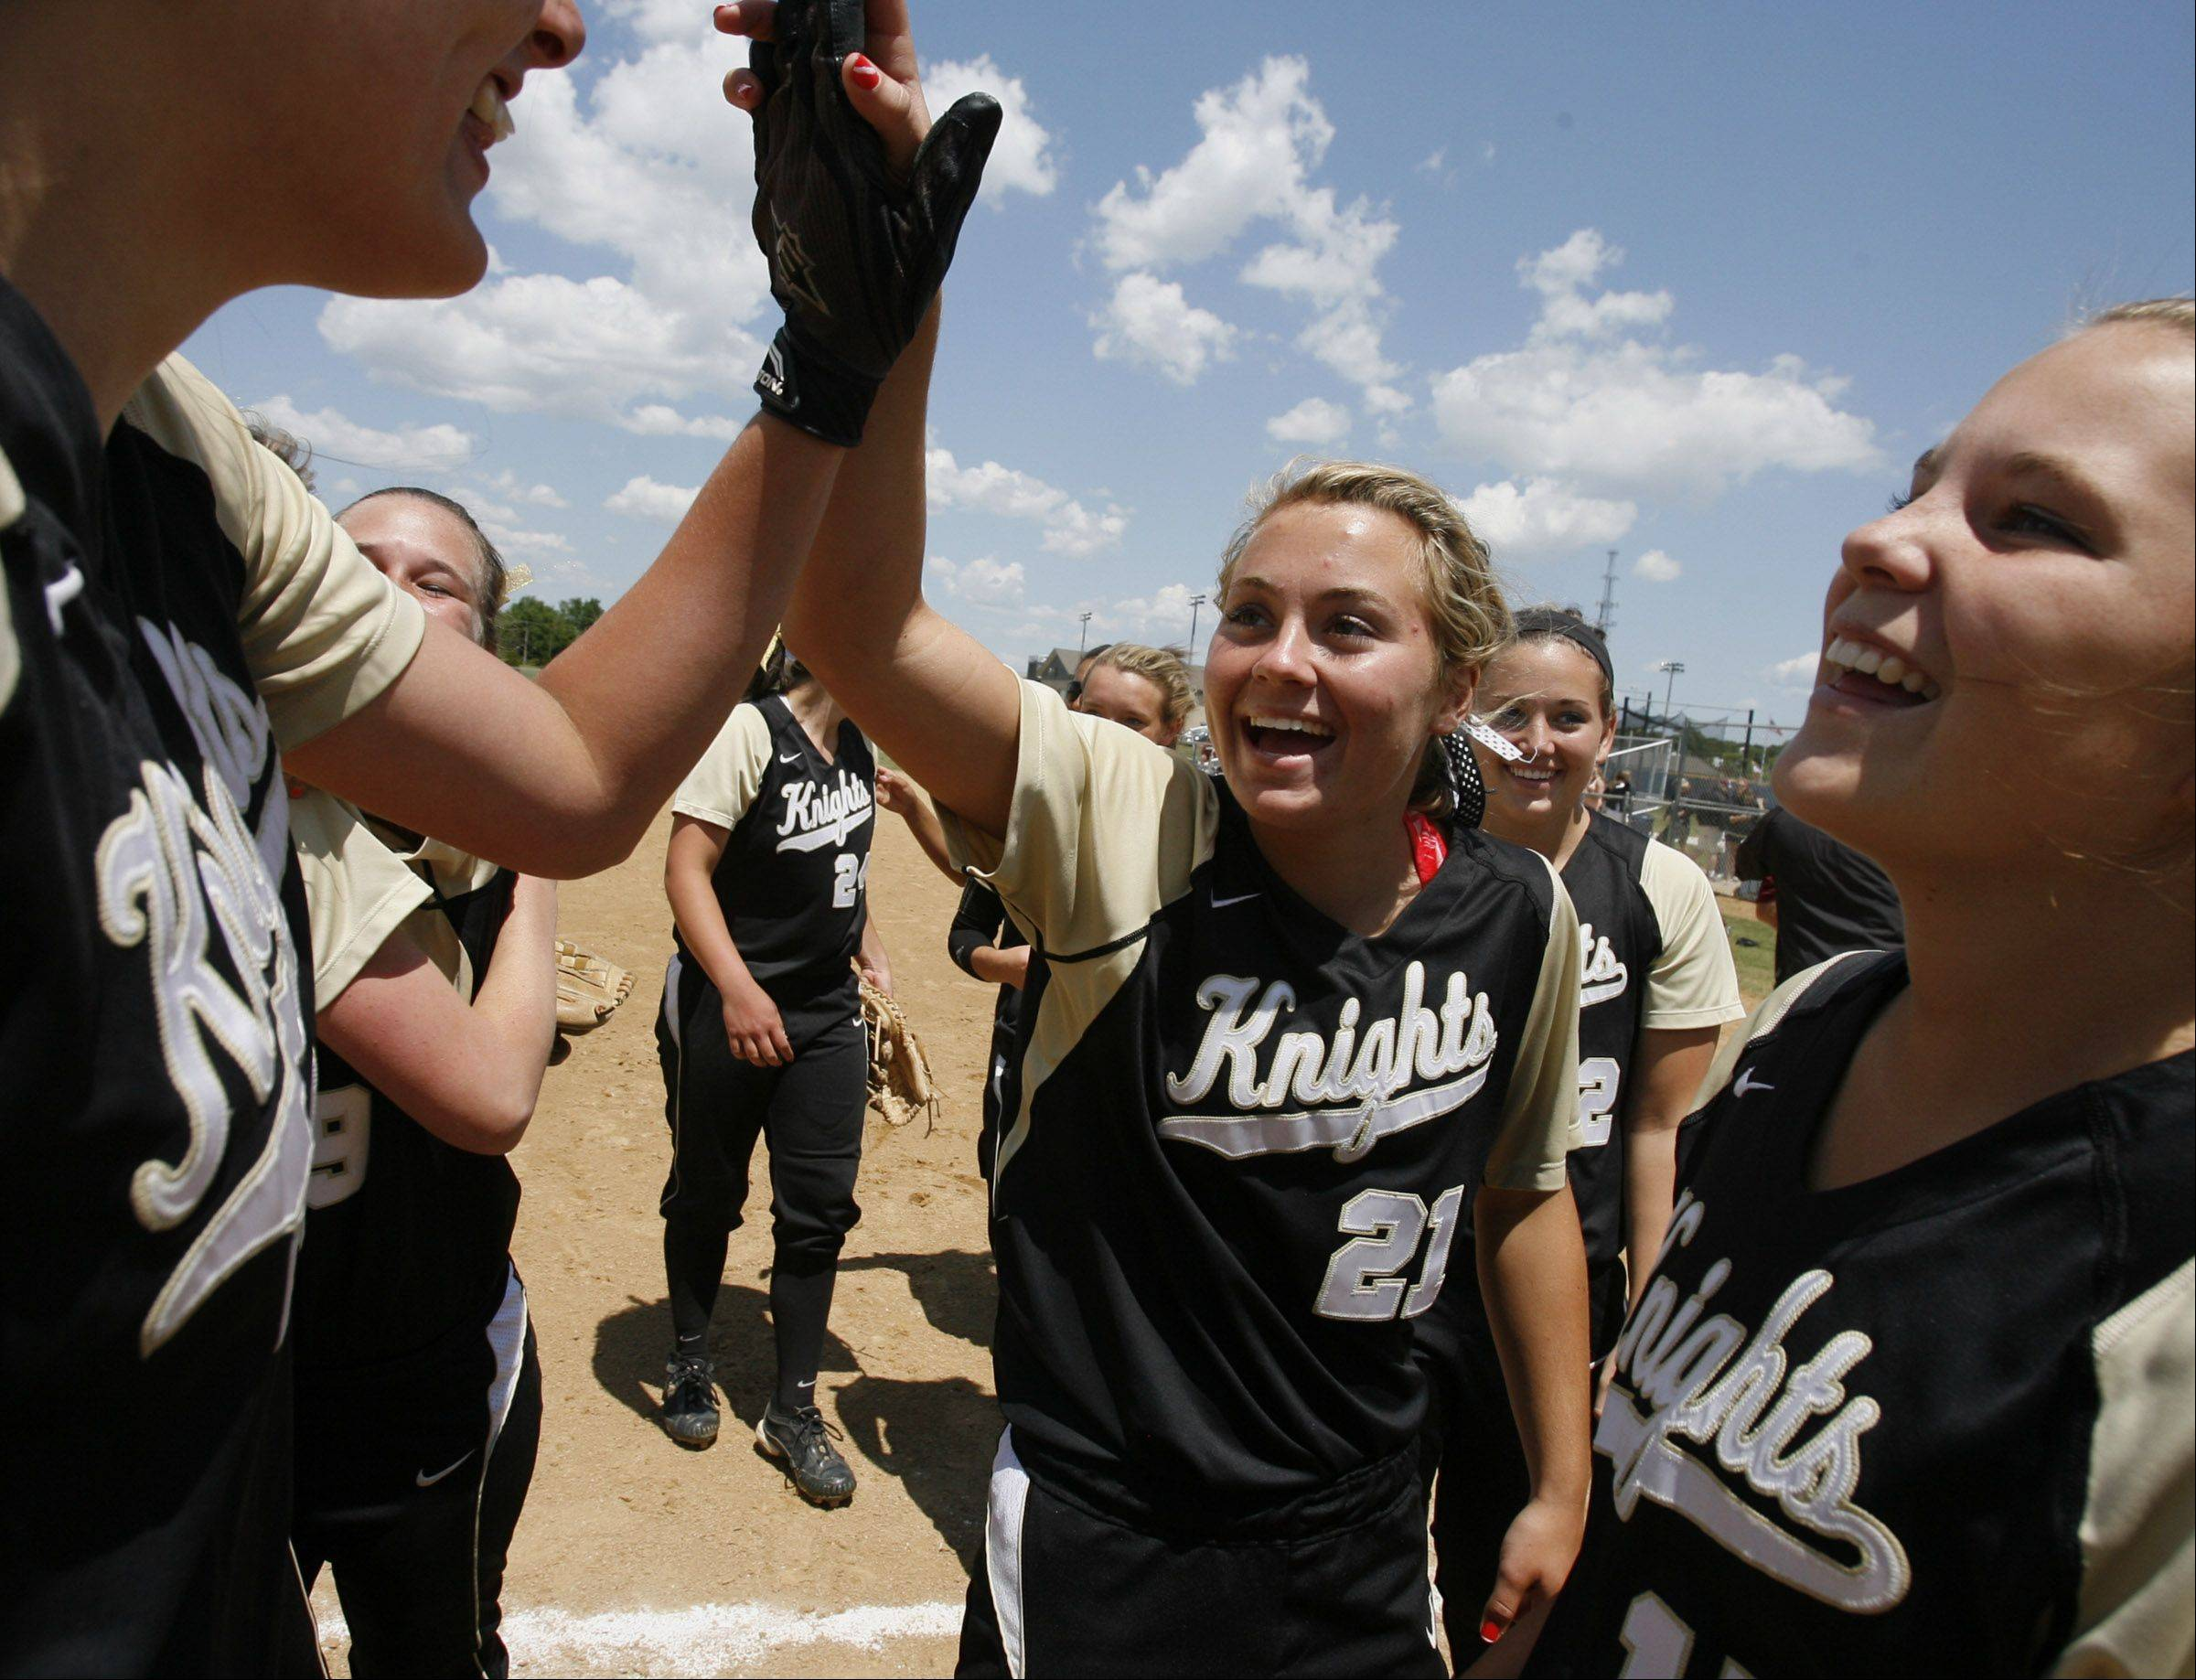 Grayslake North's Mariah Gentile gets a high-give after winning the Class 3A Lakes softball sectional final against Prairie Ridge in Lake Villa on Saturday.